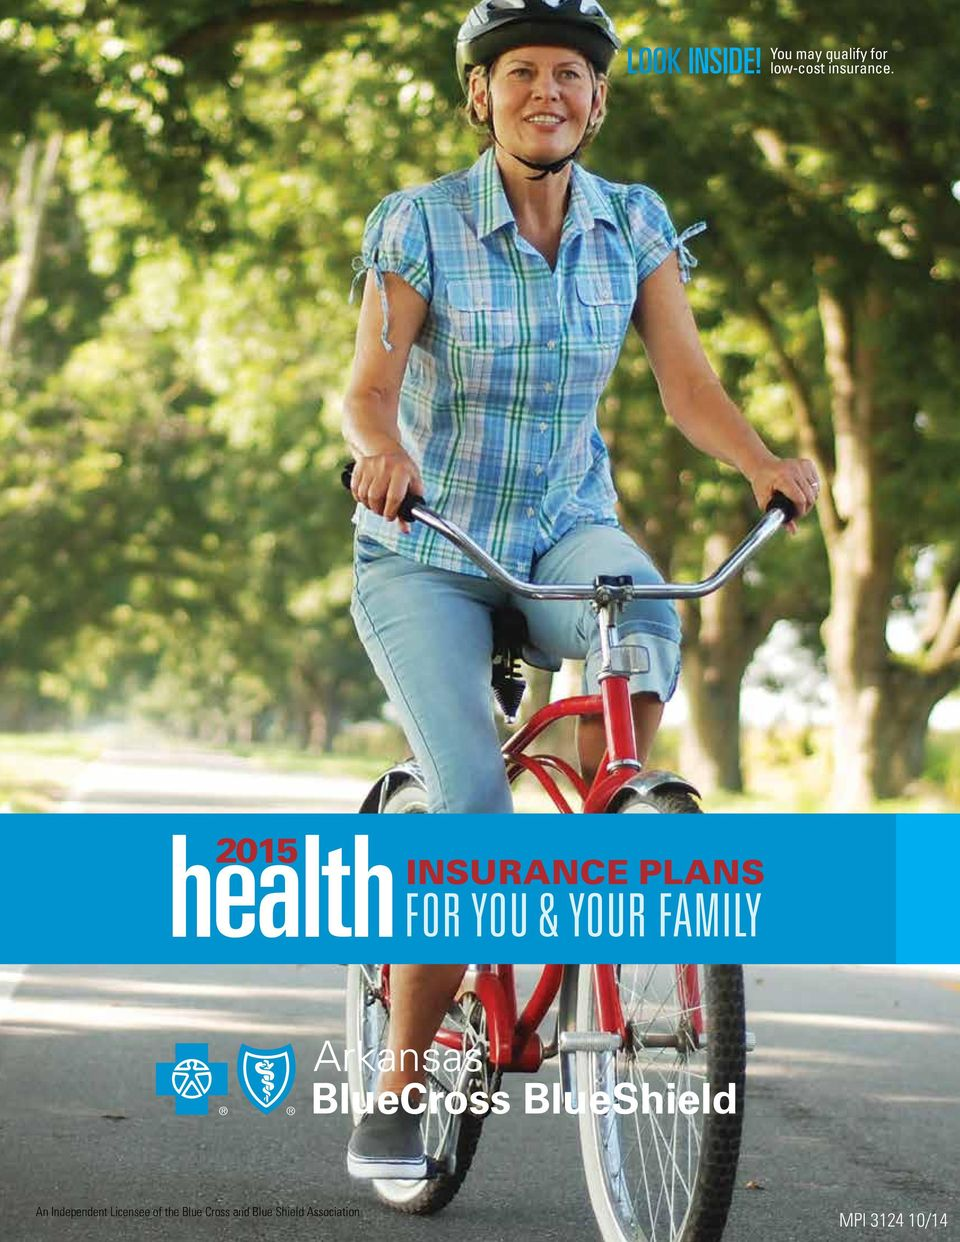 2015 healthinsurance PLANS FOR YOU & YOUR